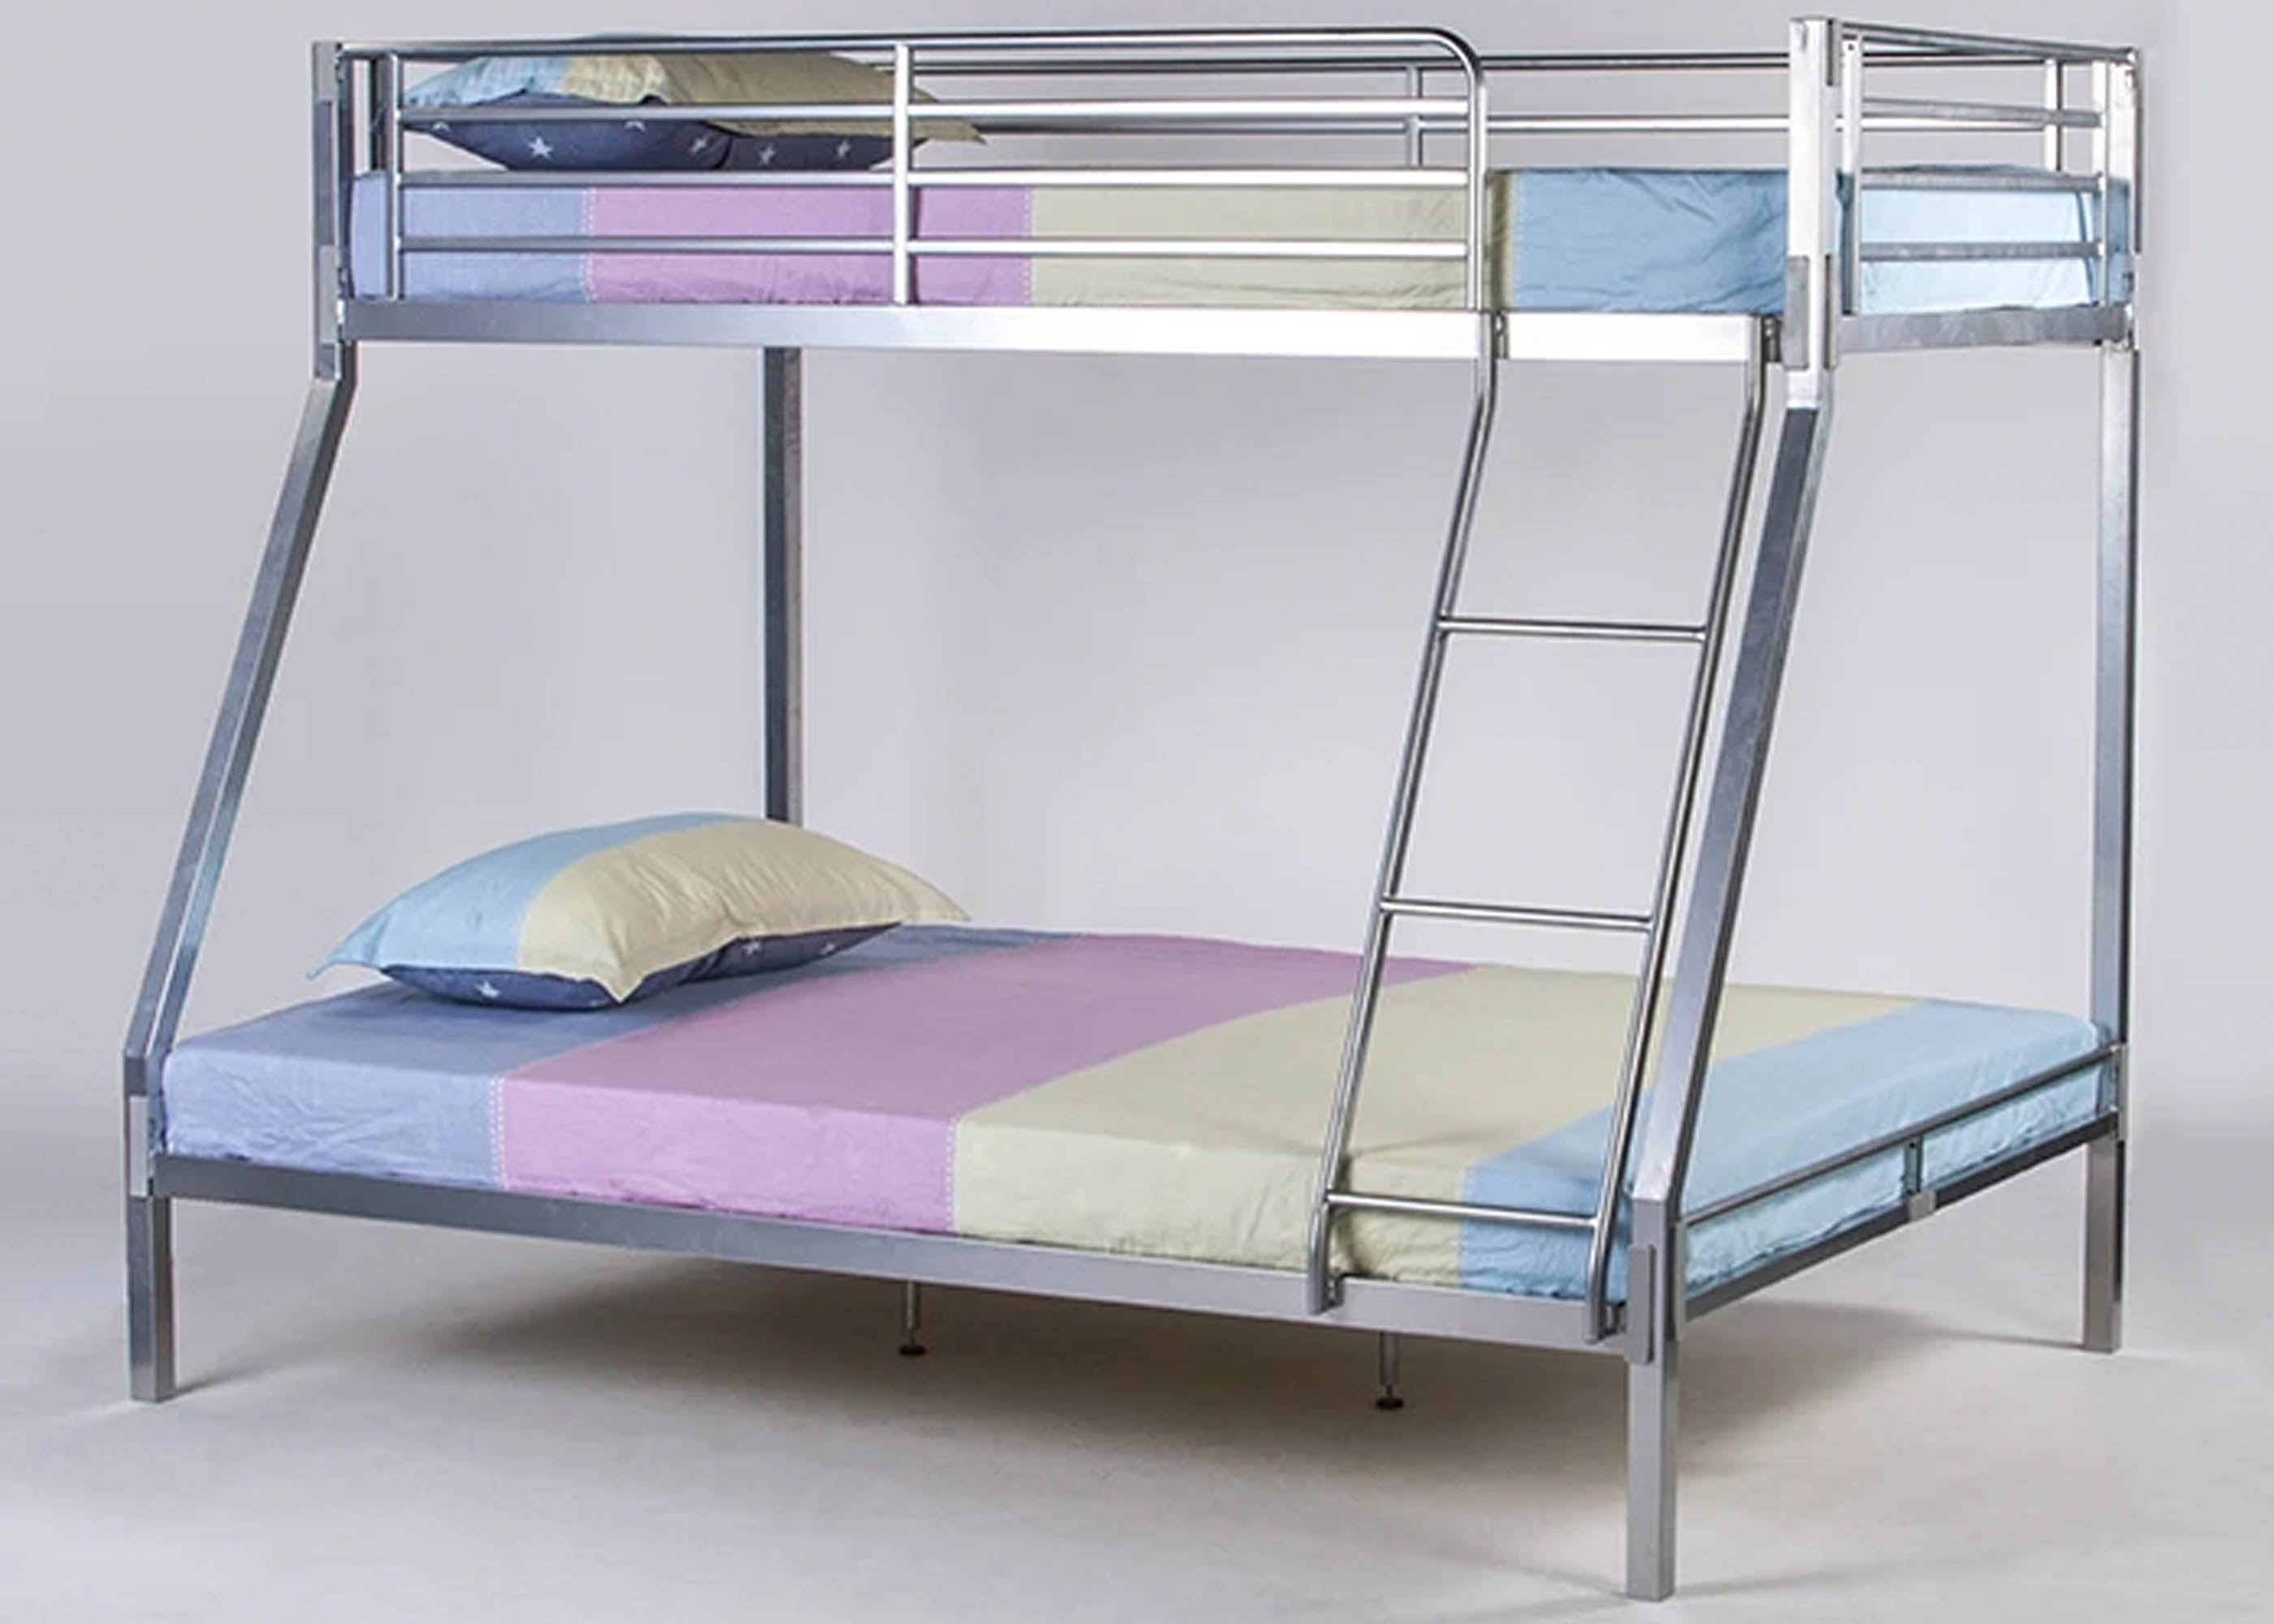 Picture of: Very Strong Metal Triple Contract Bunk Bed Reinforced Beds